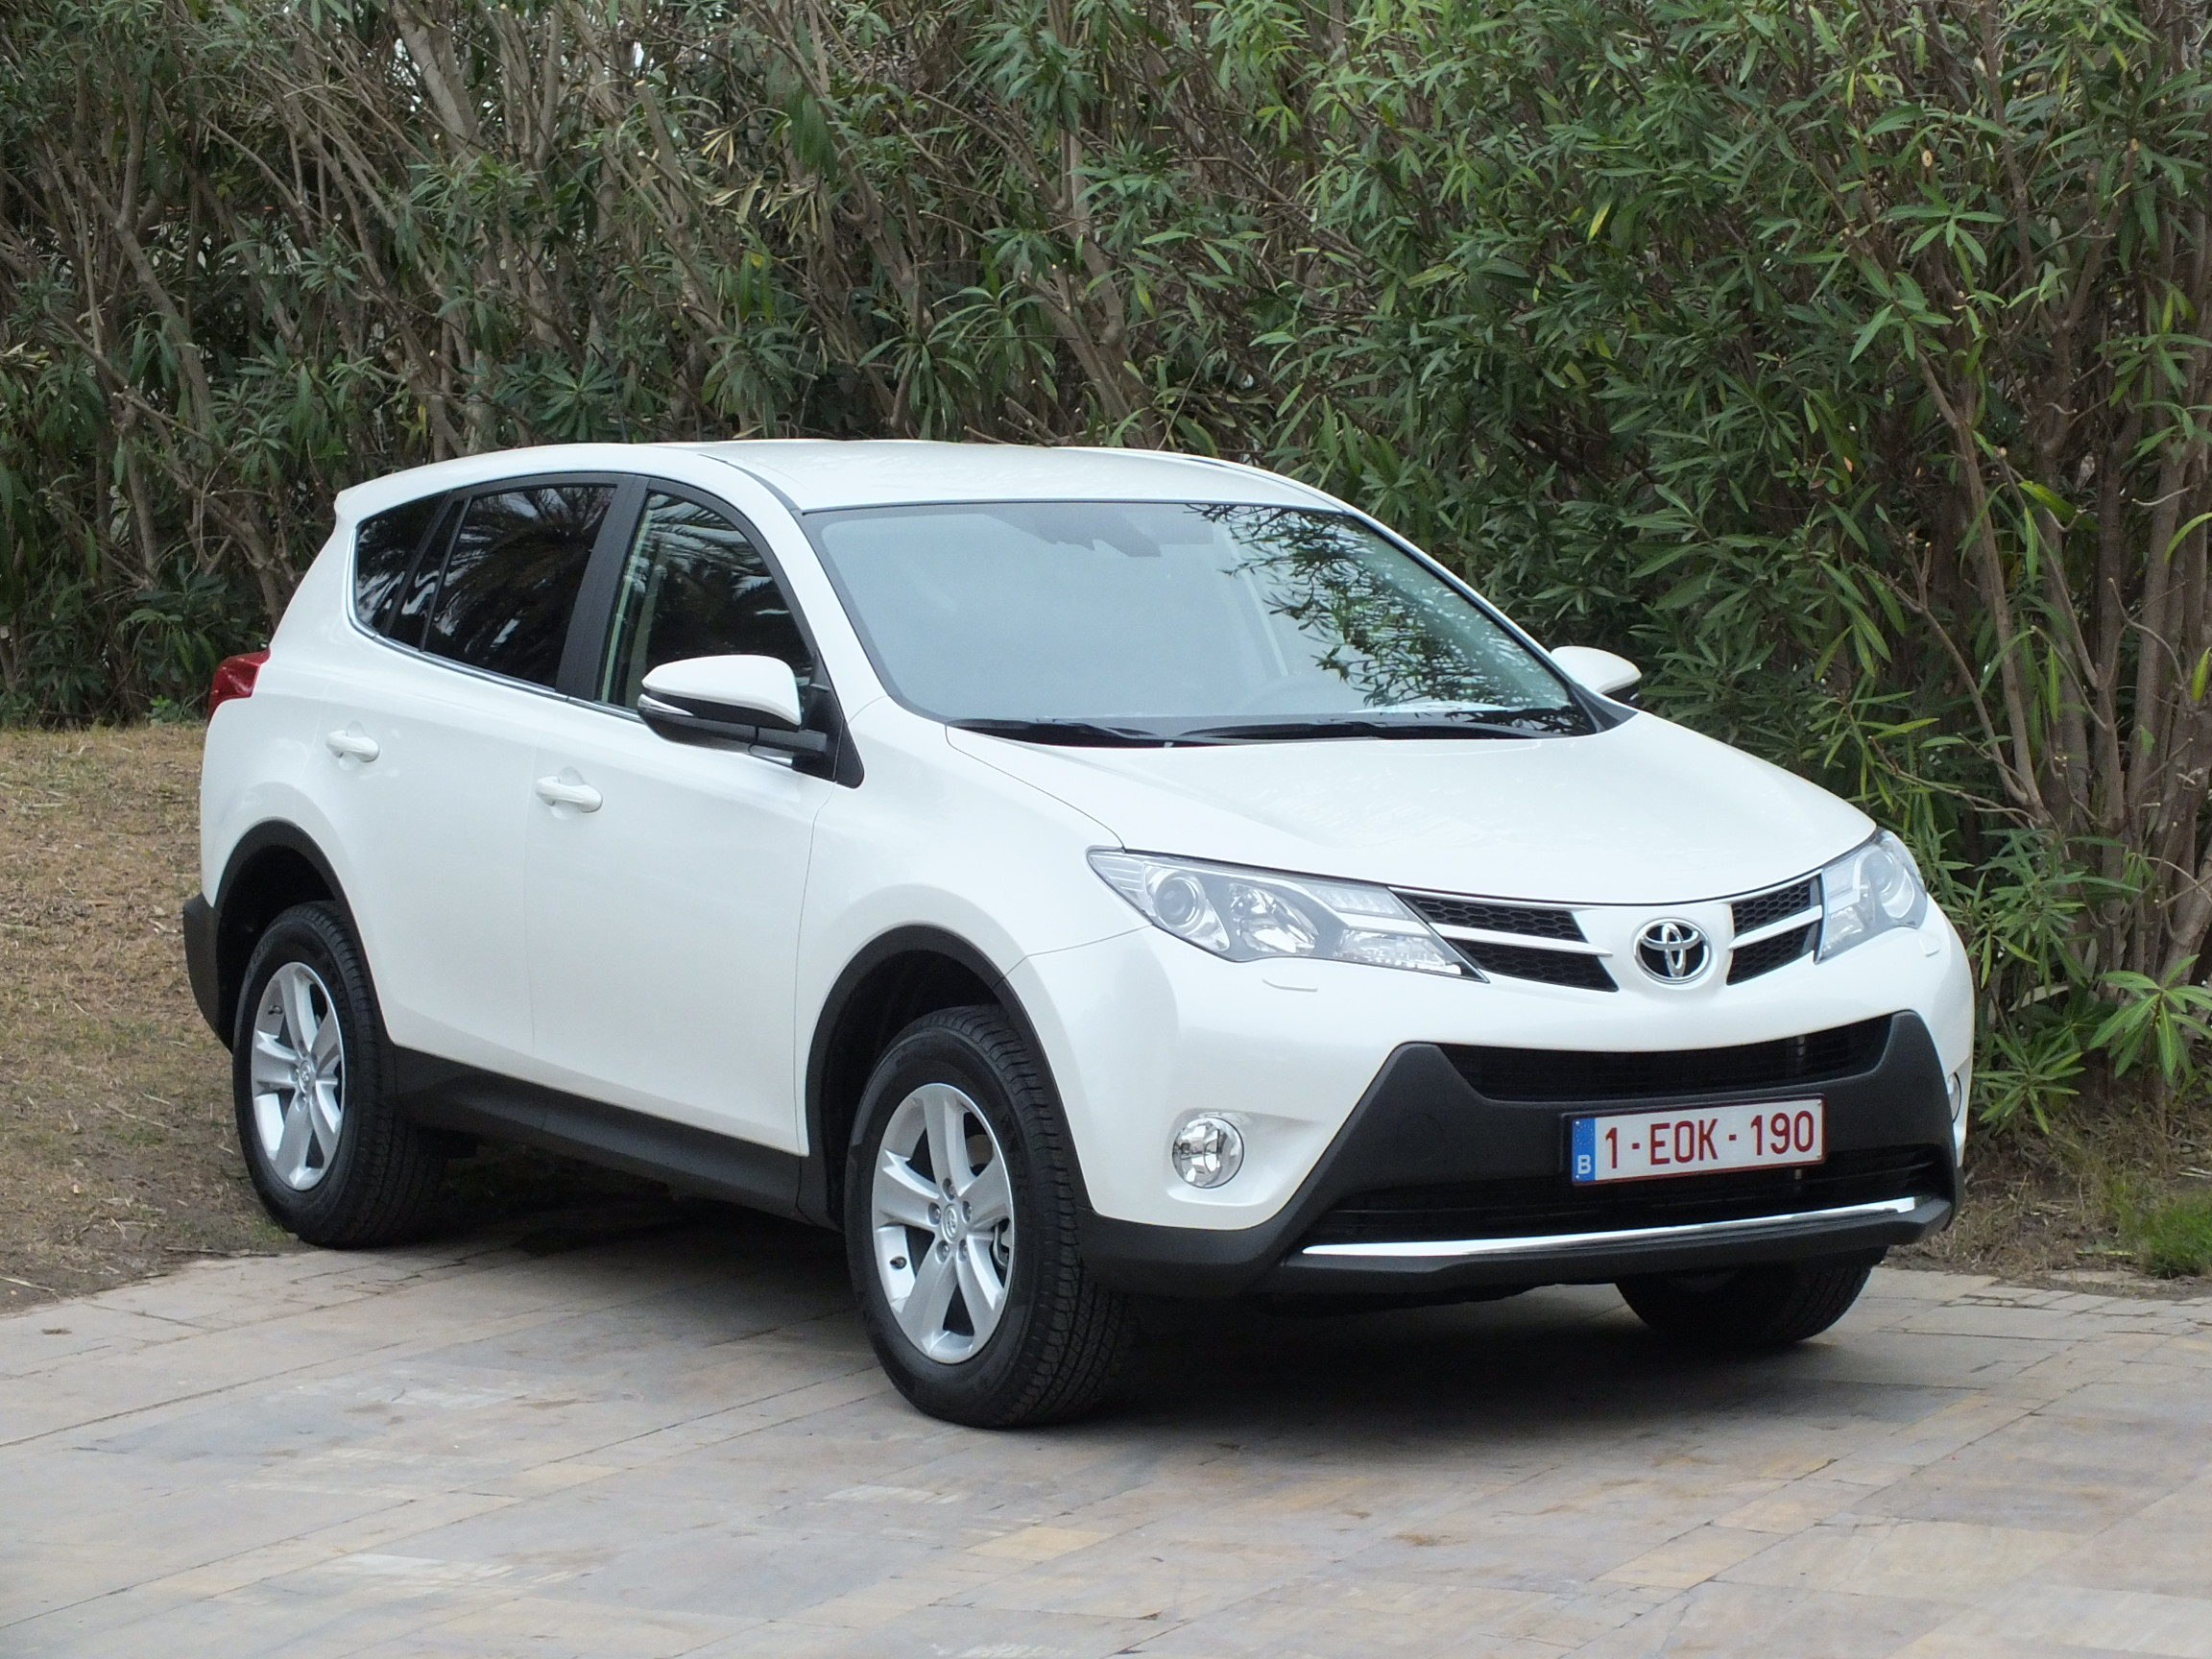 essai vid o toyota rav4 nouveau roi des suv. Black Bedroom Furniture Sets. Home Design Ideas